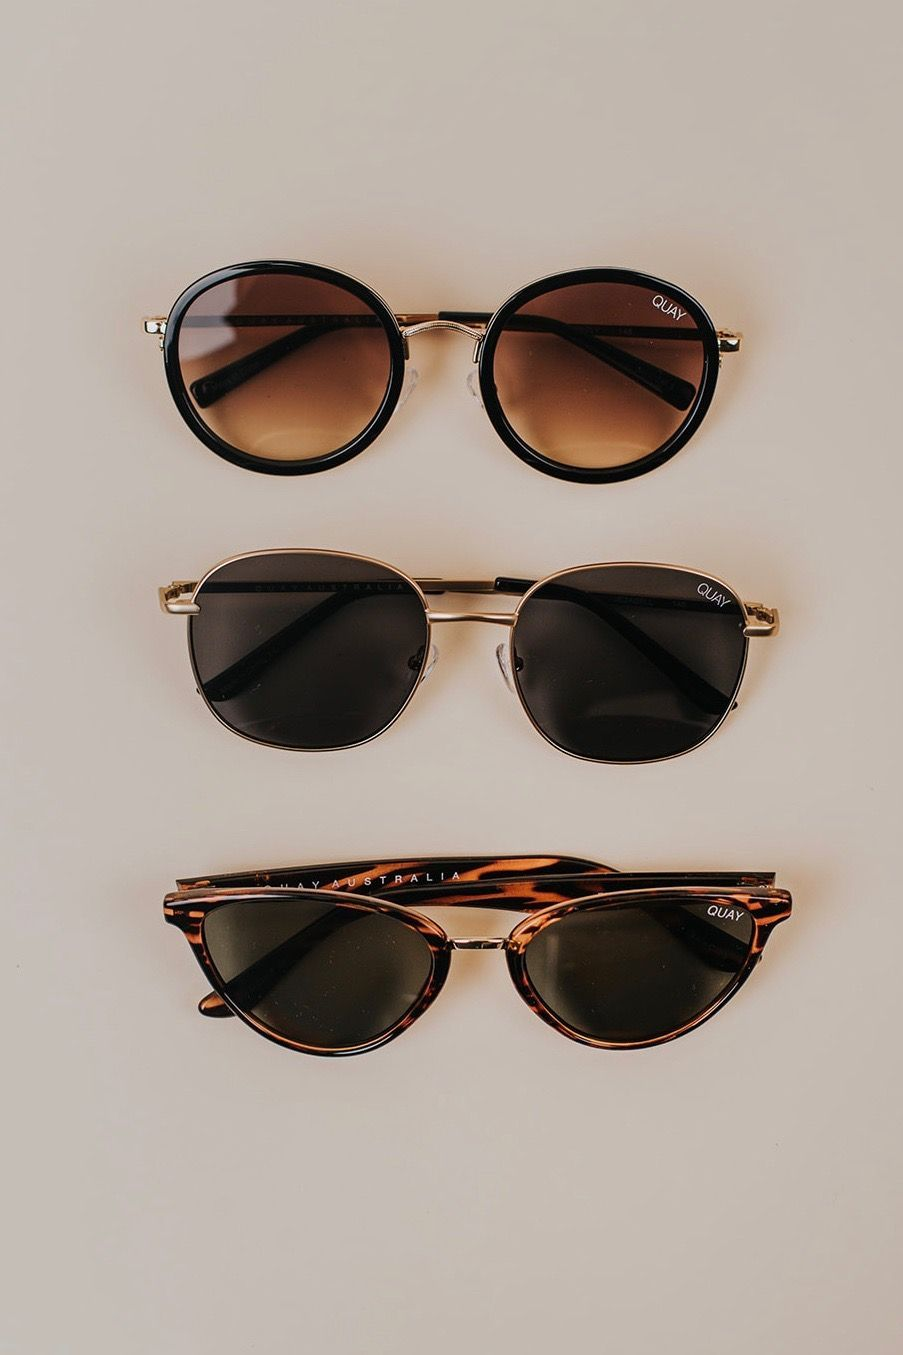 Summer Accessories for Women. Cute Sunglasses for Women. Gift Ideas for Women. Simple Trendy Sun Glasses. | ROOLEE